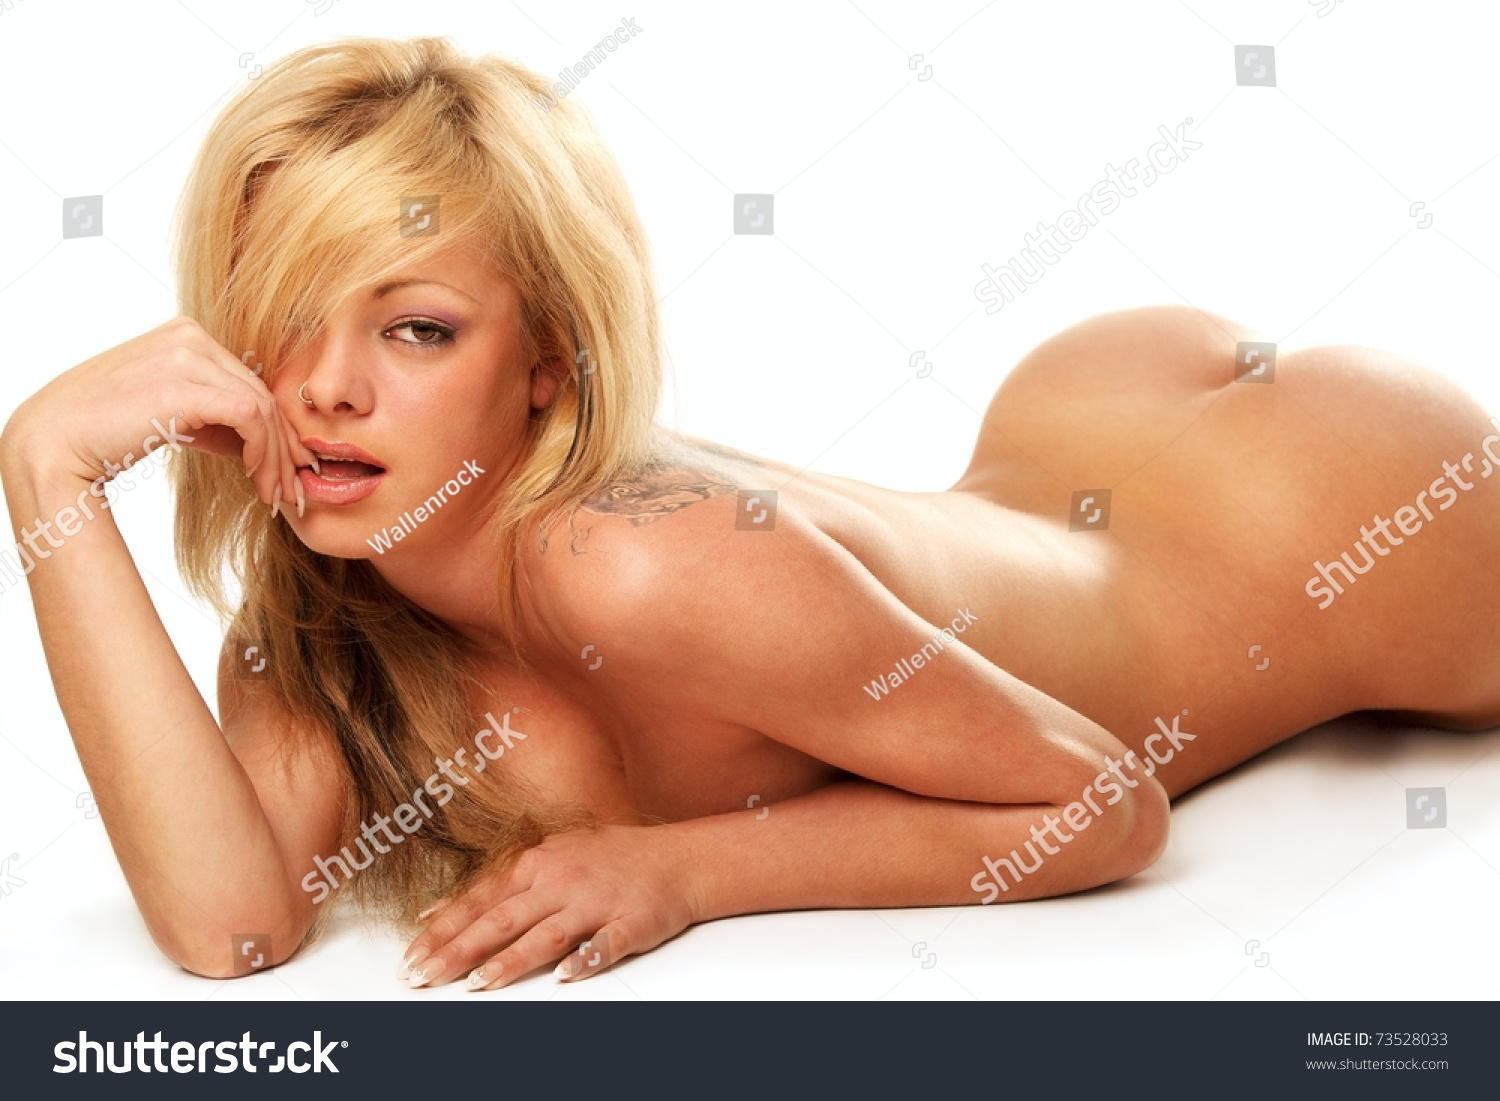 Teen Porn Website With Pink Background 2